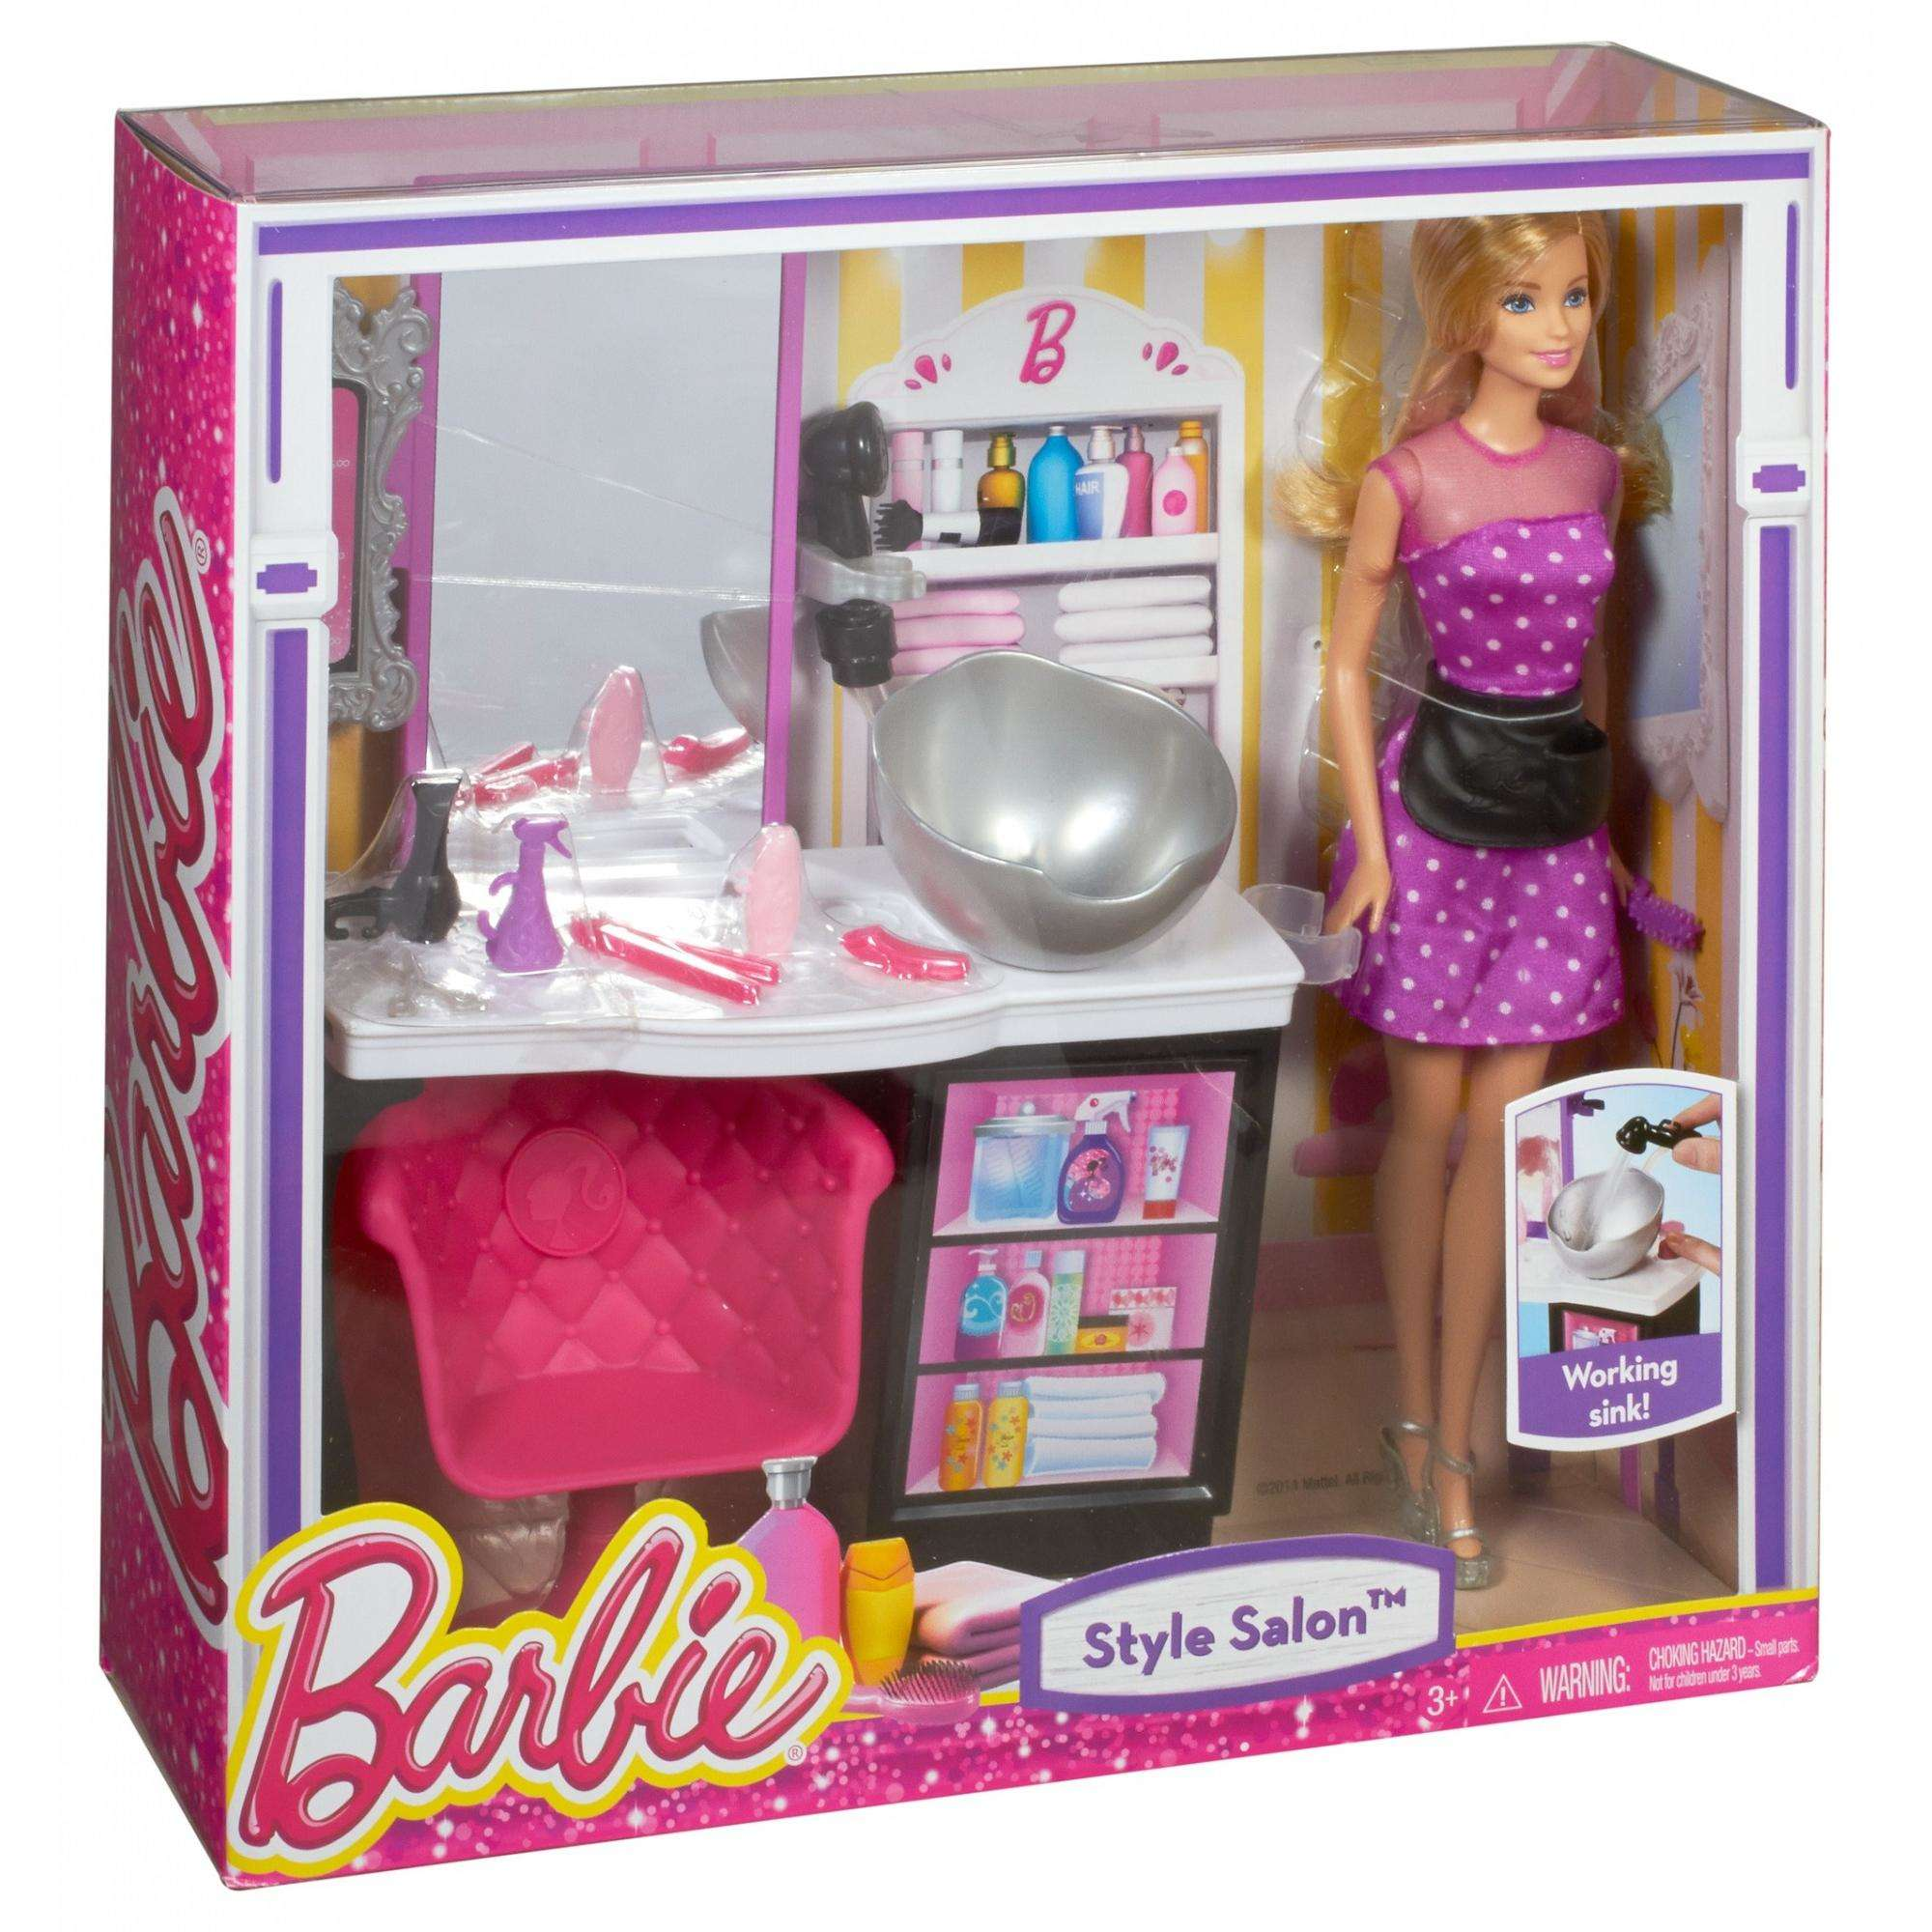 Giocattoli E Modellismo Alert Barbie Malibu Spare No Cost At Any Cost